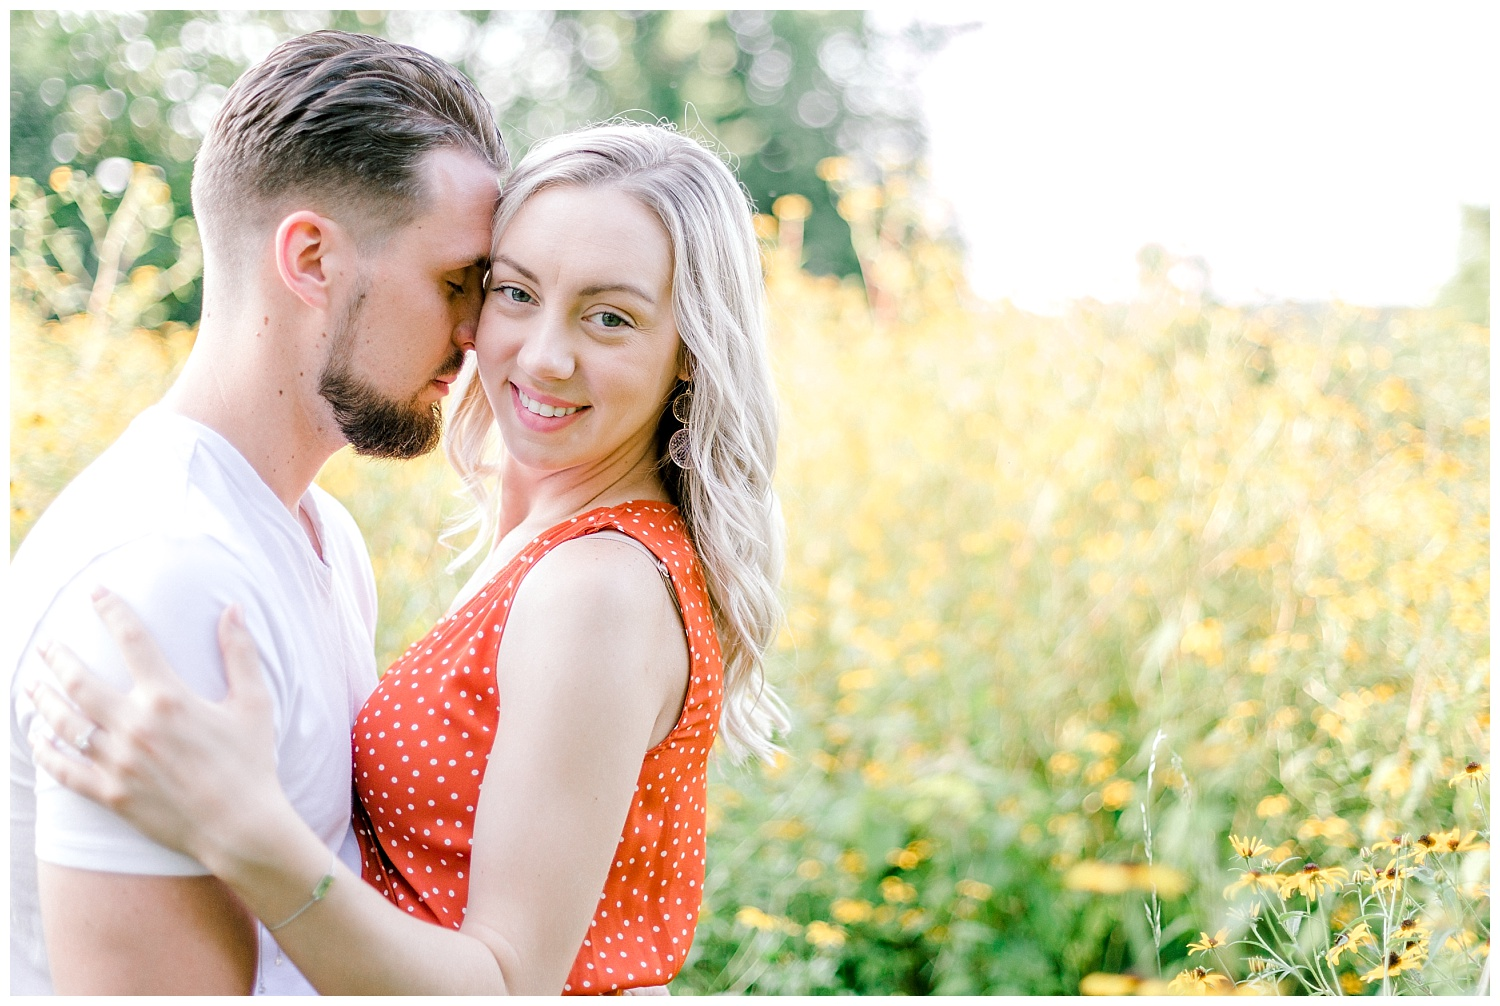 Blue Marsh Lake Reading Pennsylvania flower field golden hour engagement session by PA based wedding and lifestyle photographer Lytle photography_0010.jpg